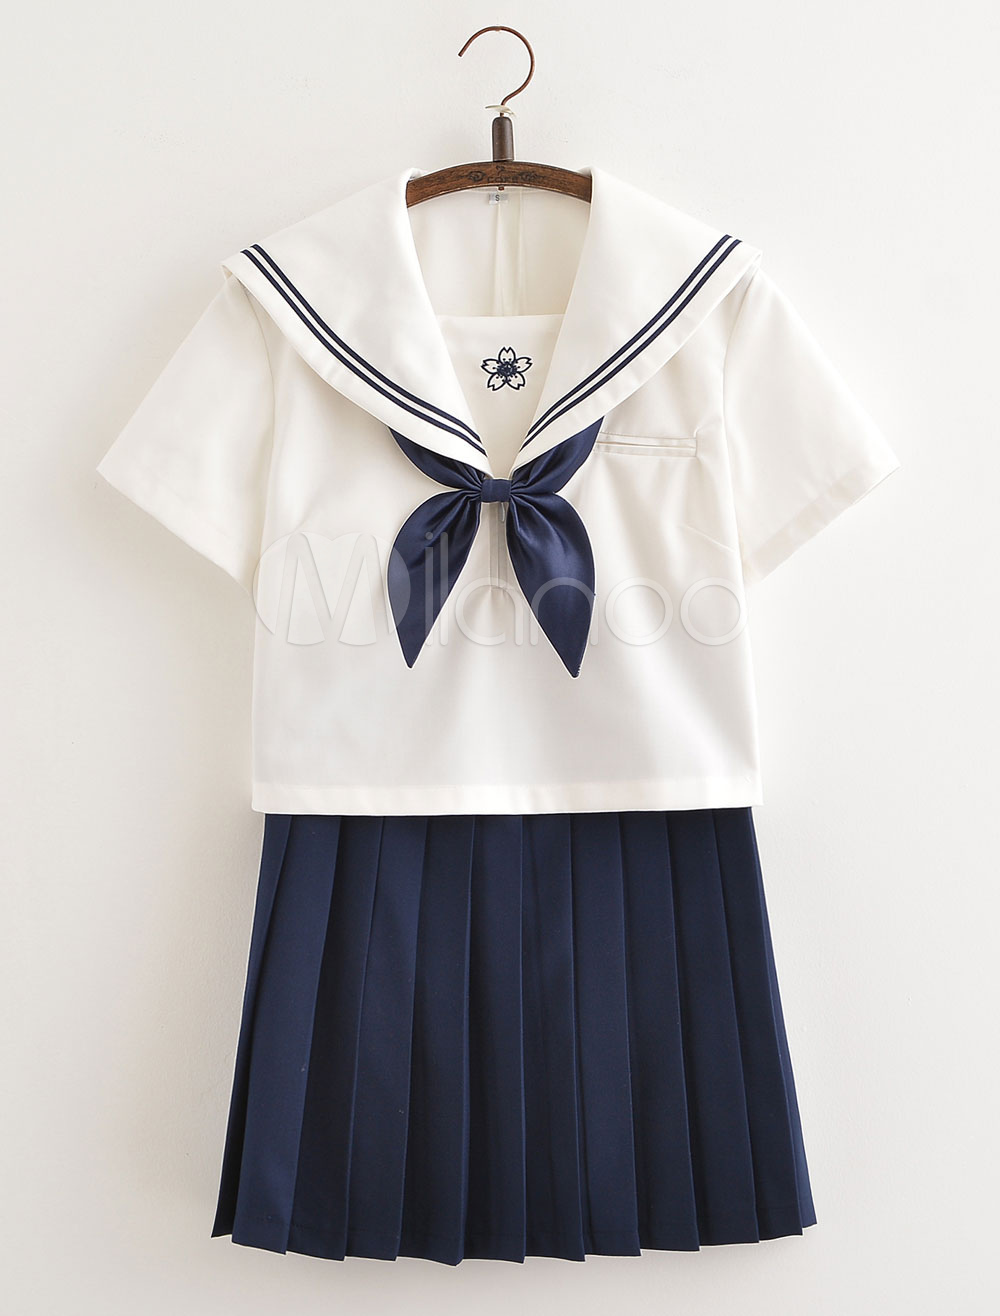 Buy Japanese Anime School Uniform Short Sleeve Kawaii School Girl Cosplay for $56.99 in Milanoo store